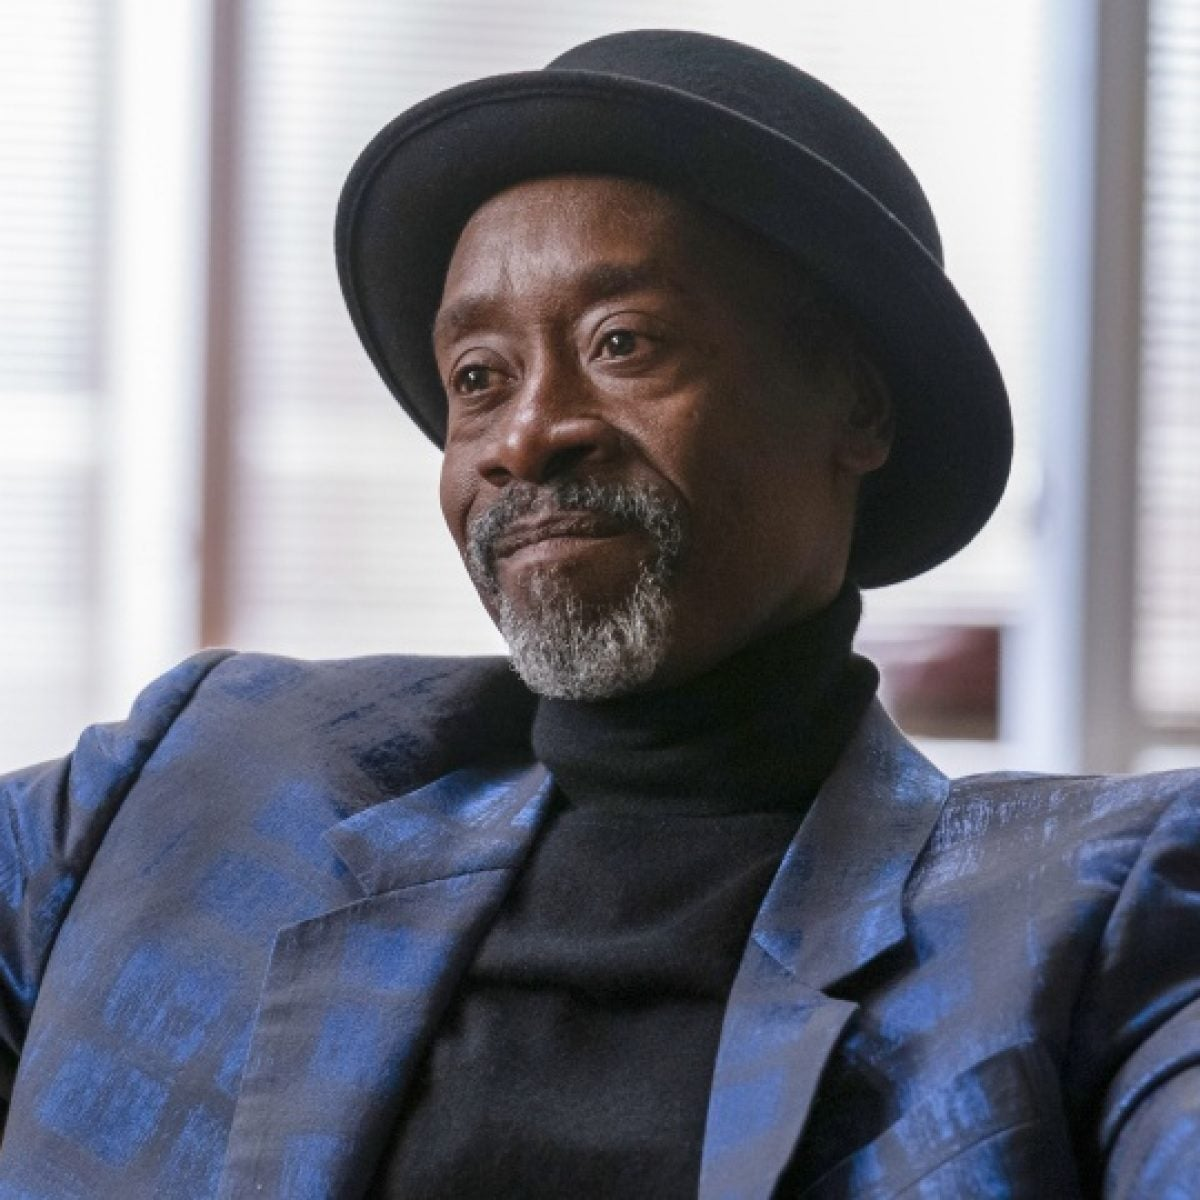 Don Cheadle On Taking Producing Seriously: 'A Lot Of People In This Business Just Want The Title'